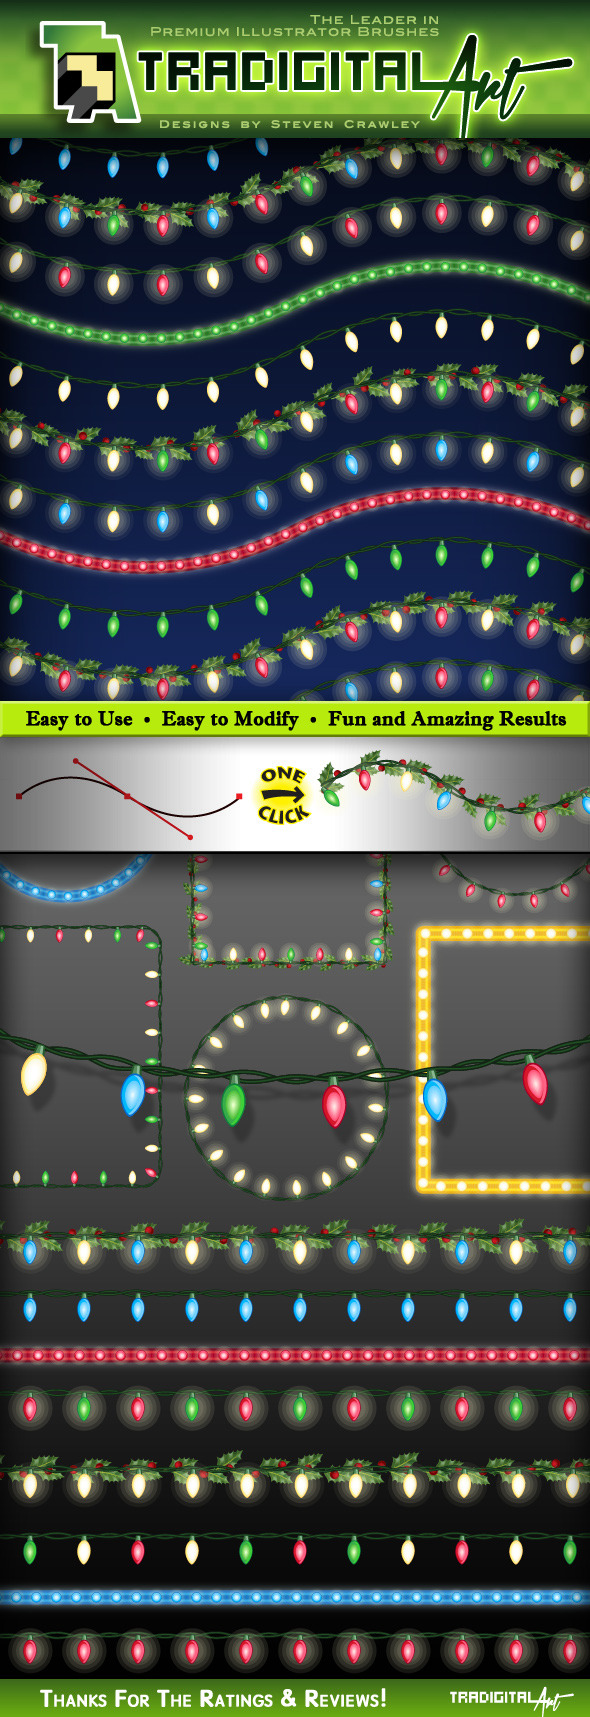 GraphicRiver Christmas Lights Brushes Set 2 9366506